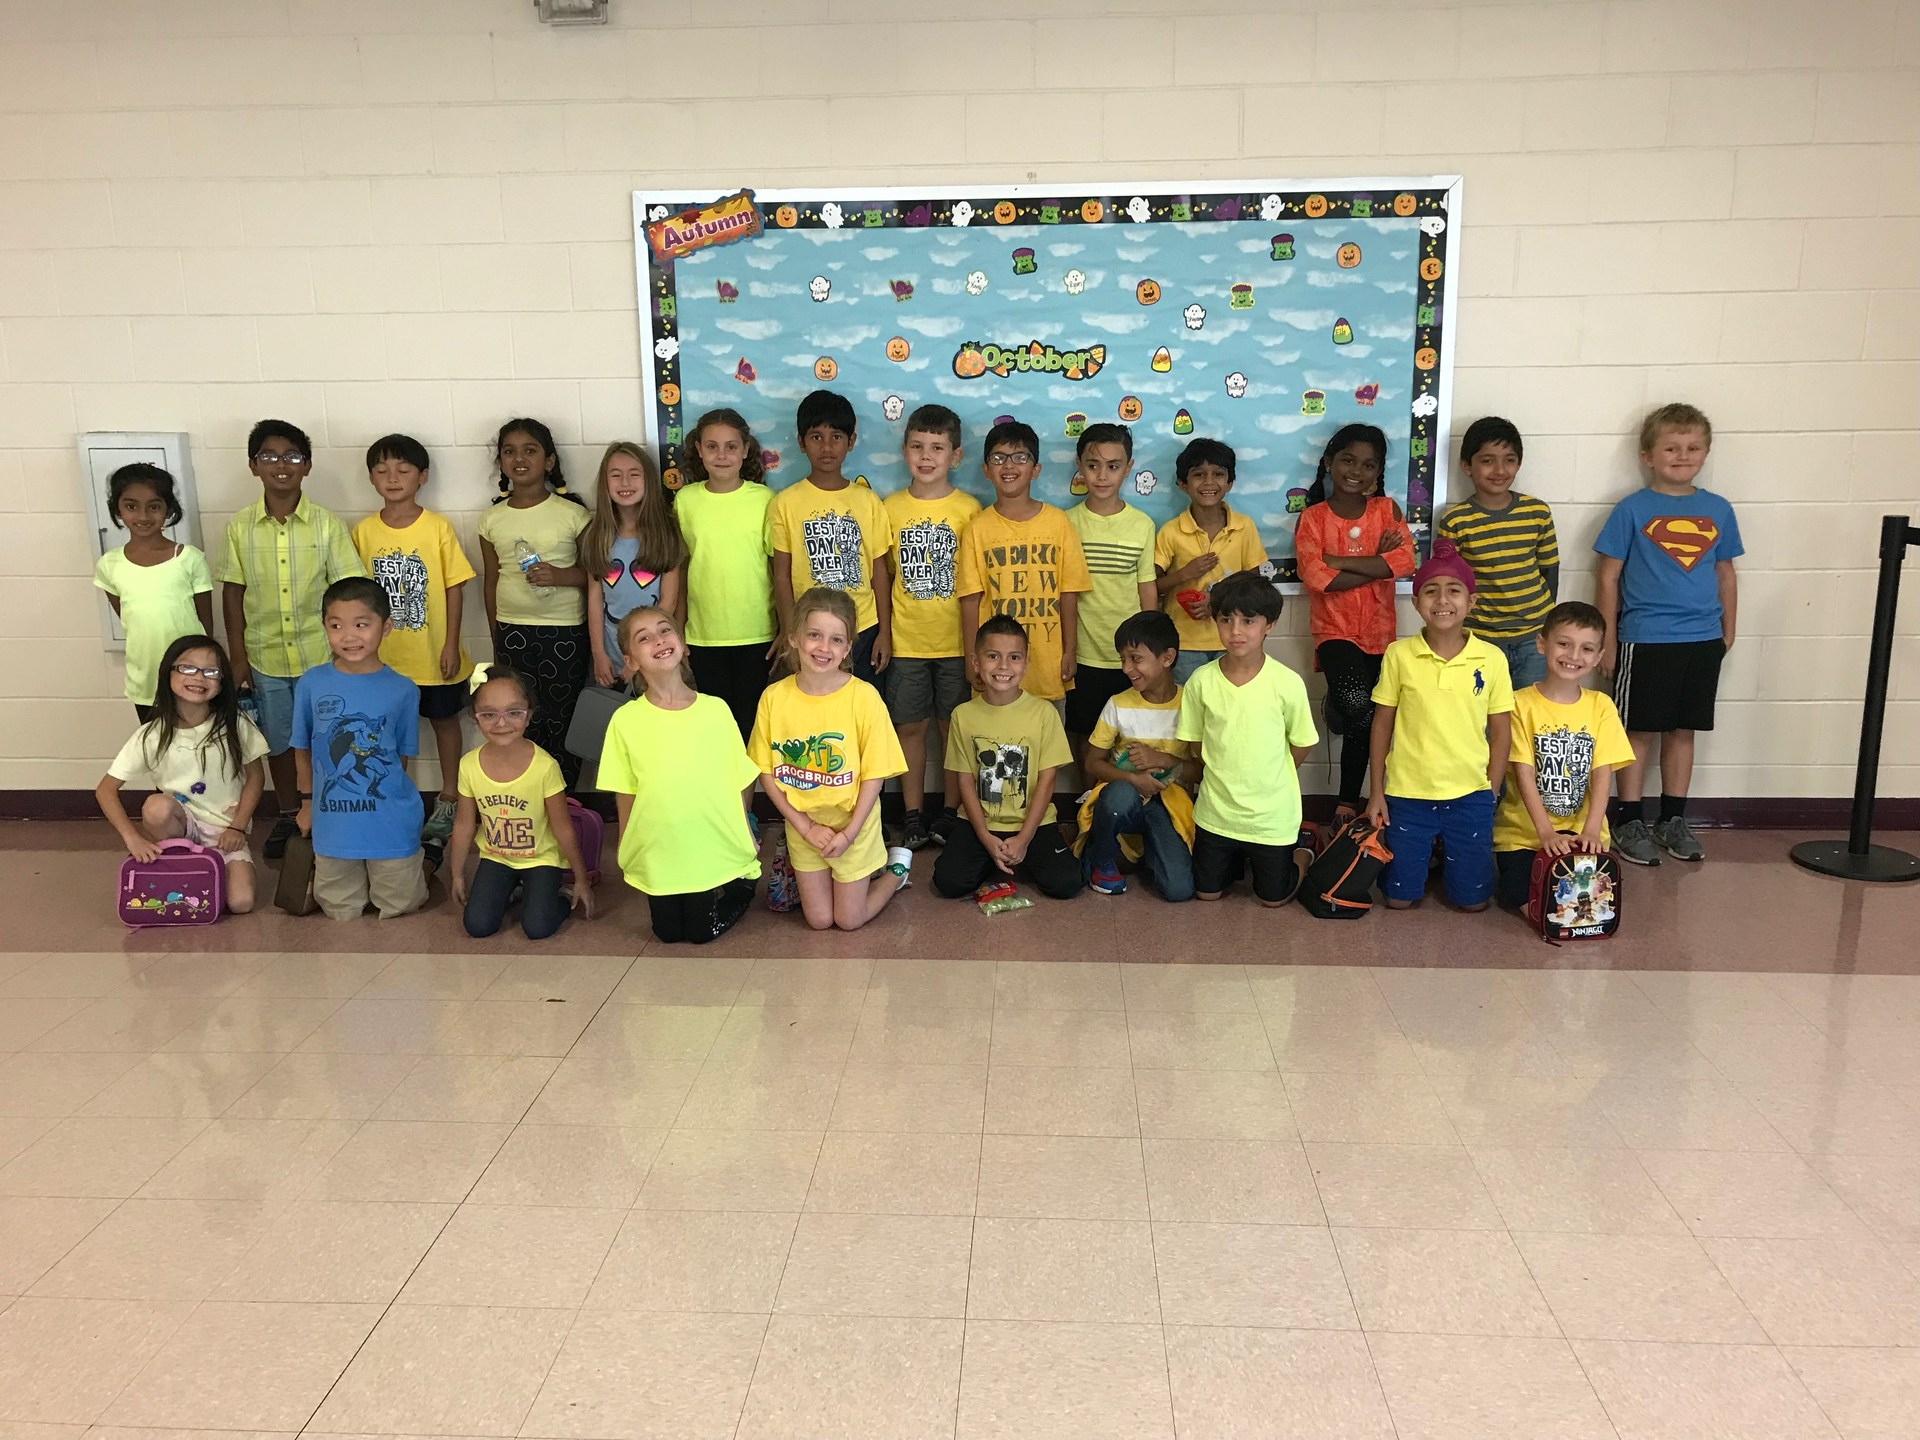 Wear yellow for RESPECT and the GOLDEN RULE.